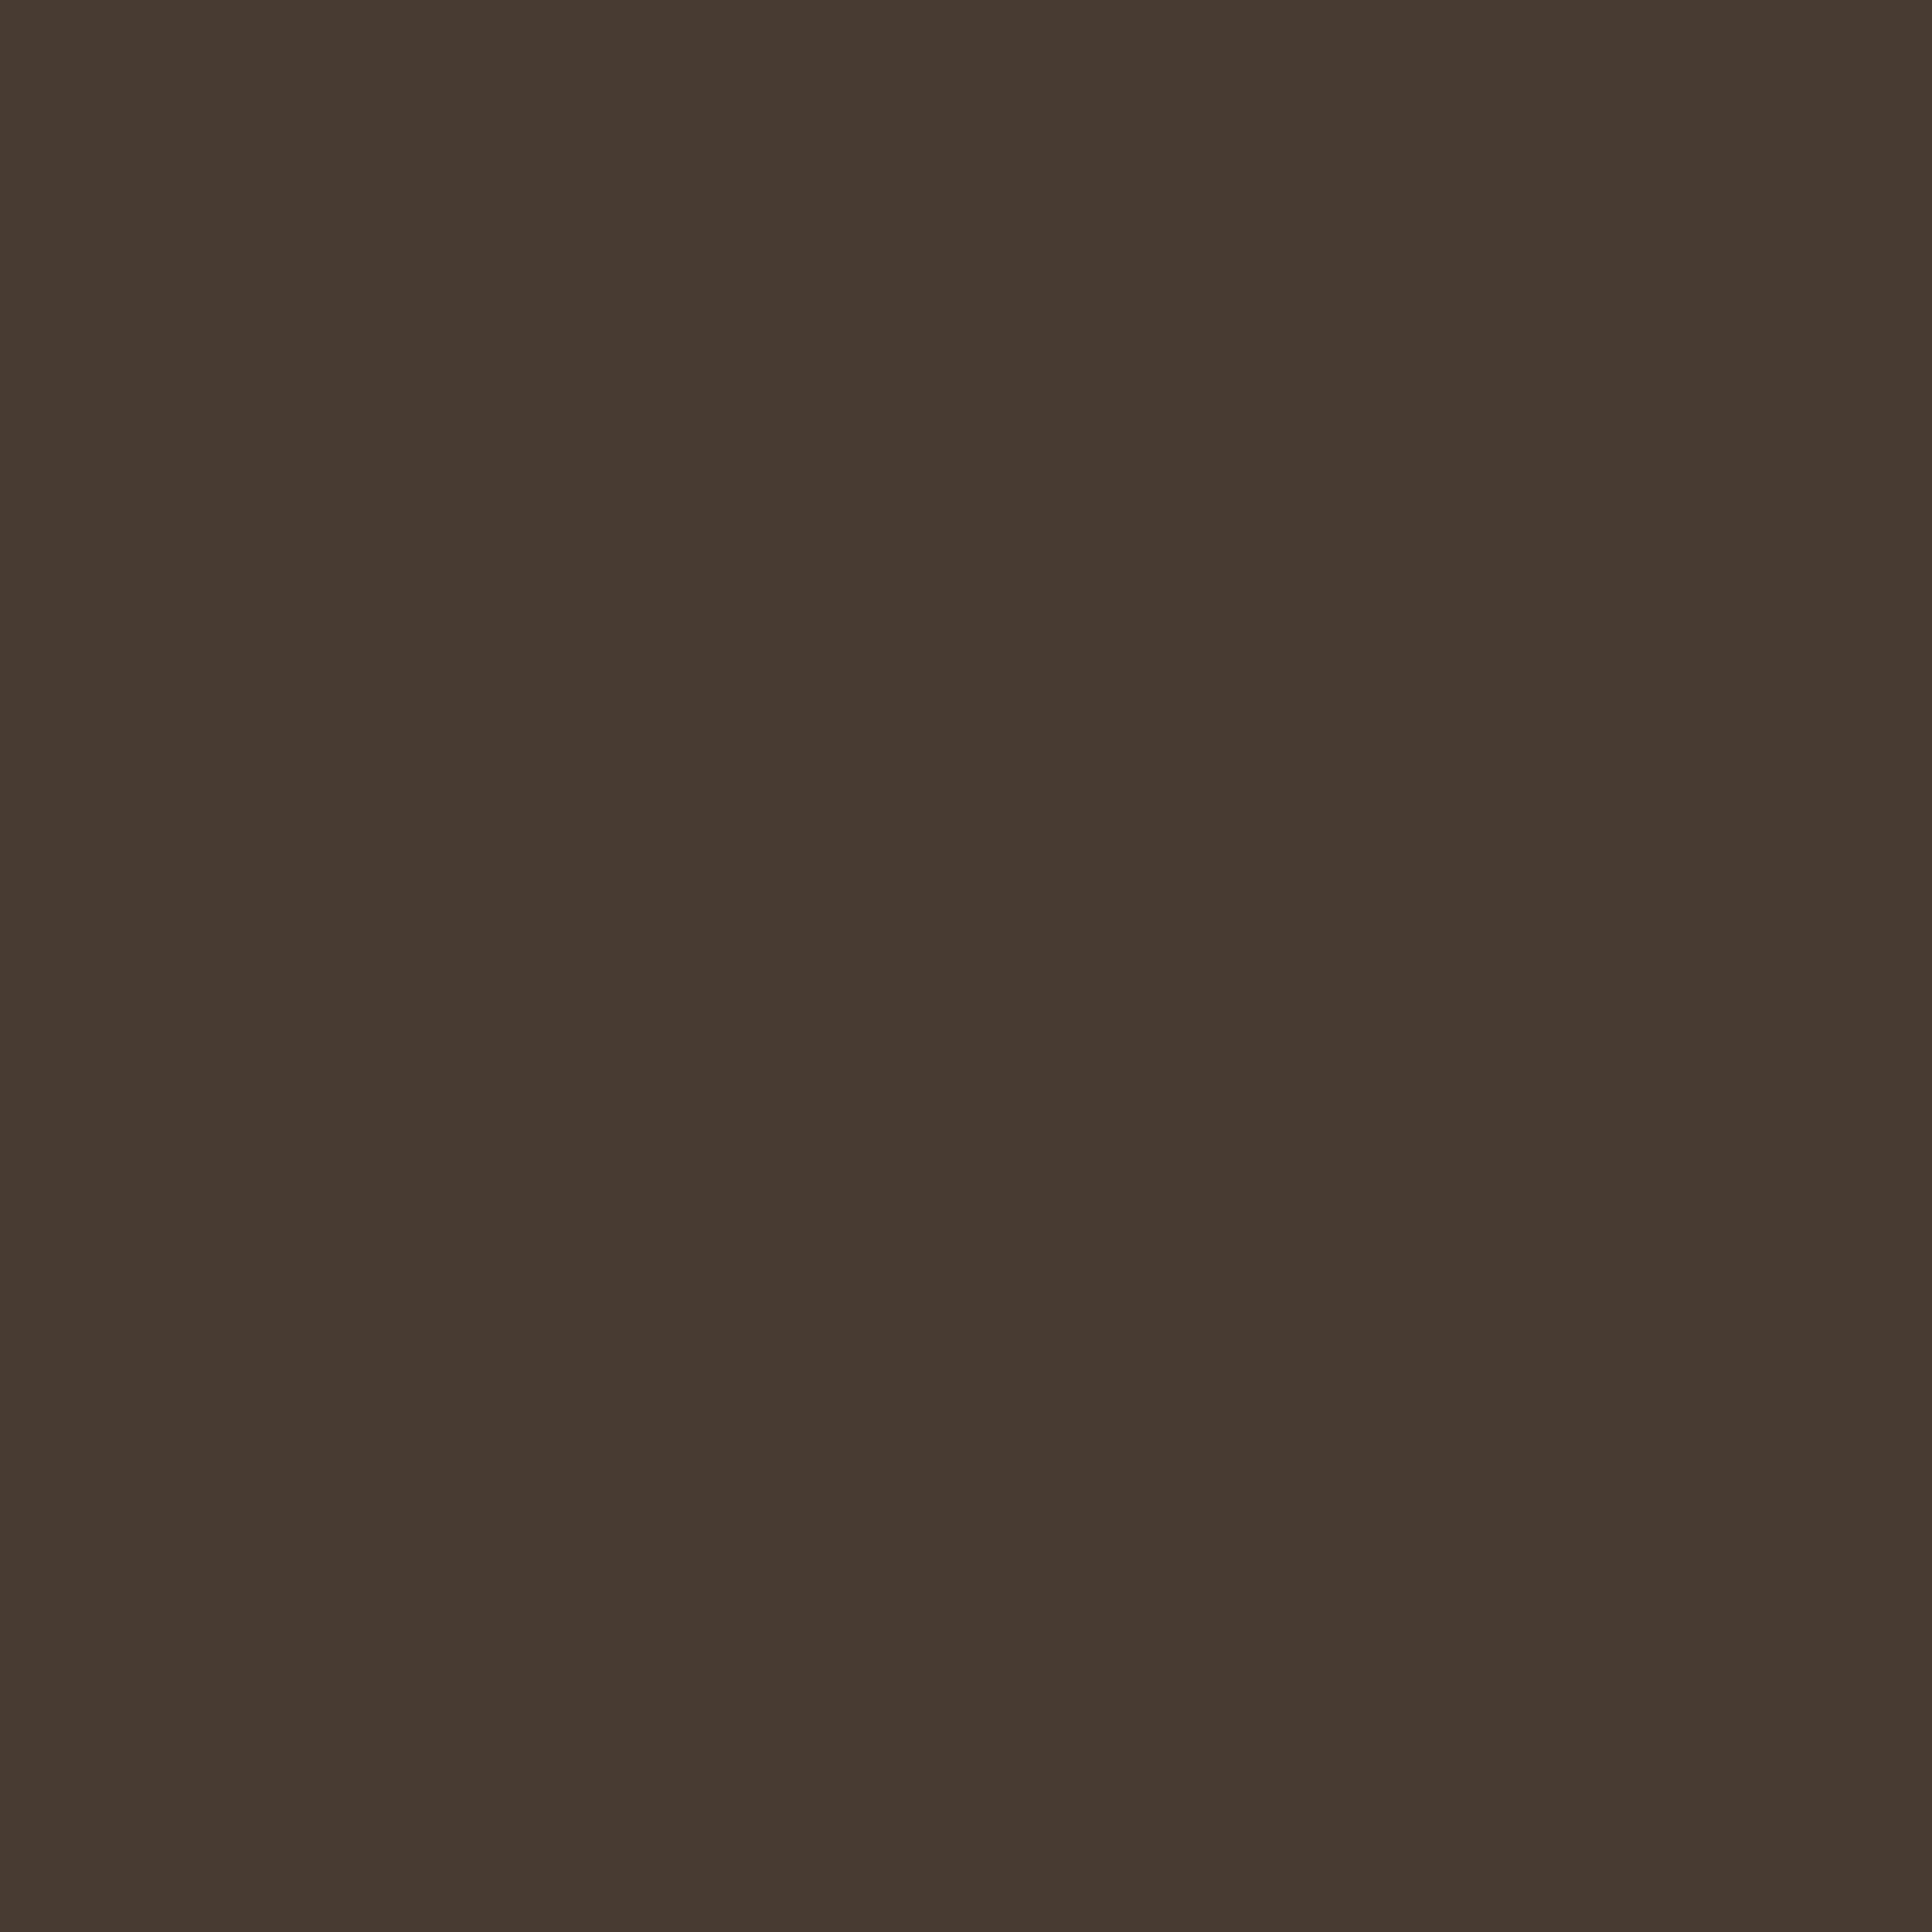 3600x3600 Dark Taupe Solid Color Background